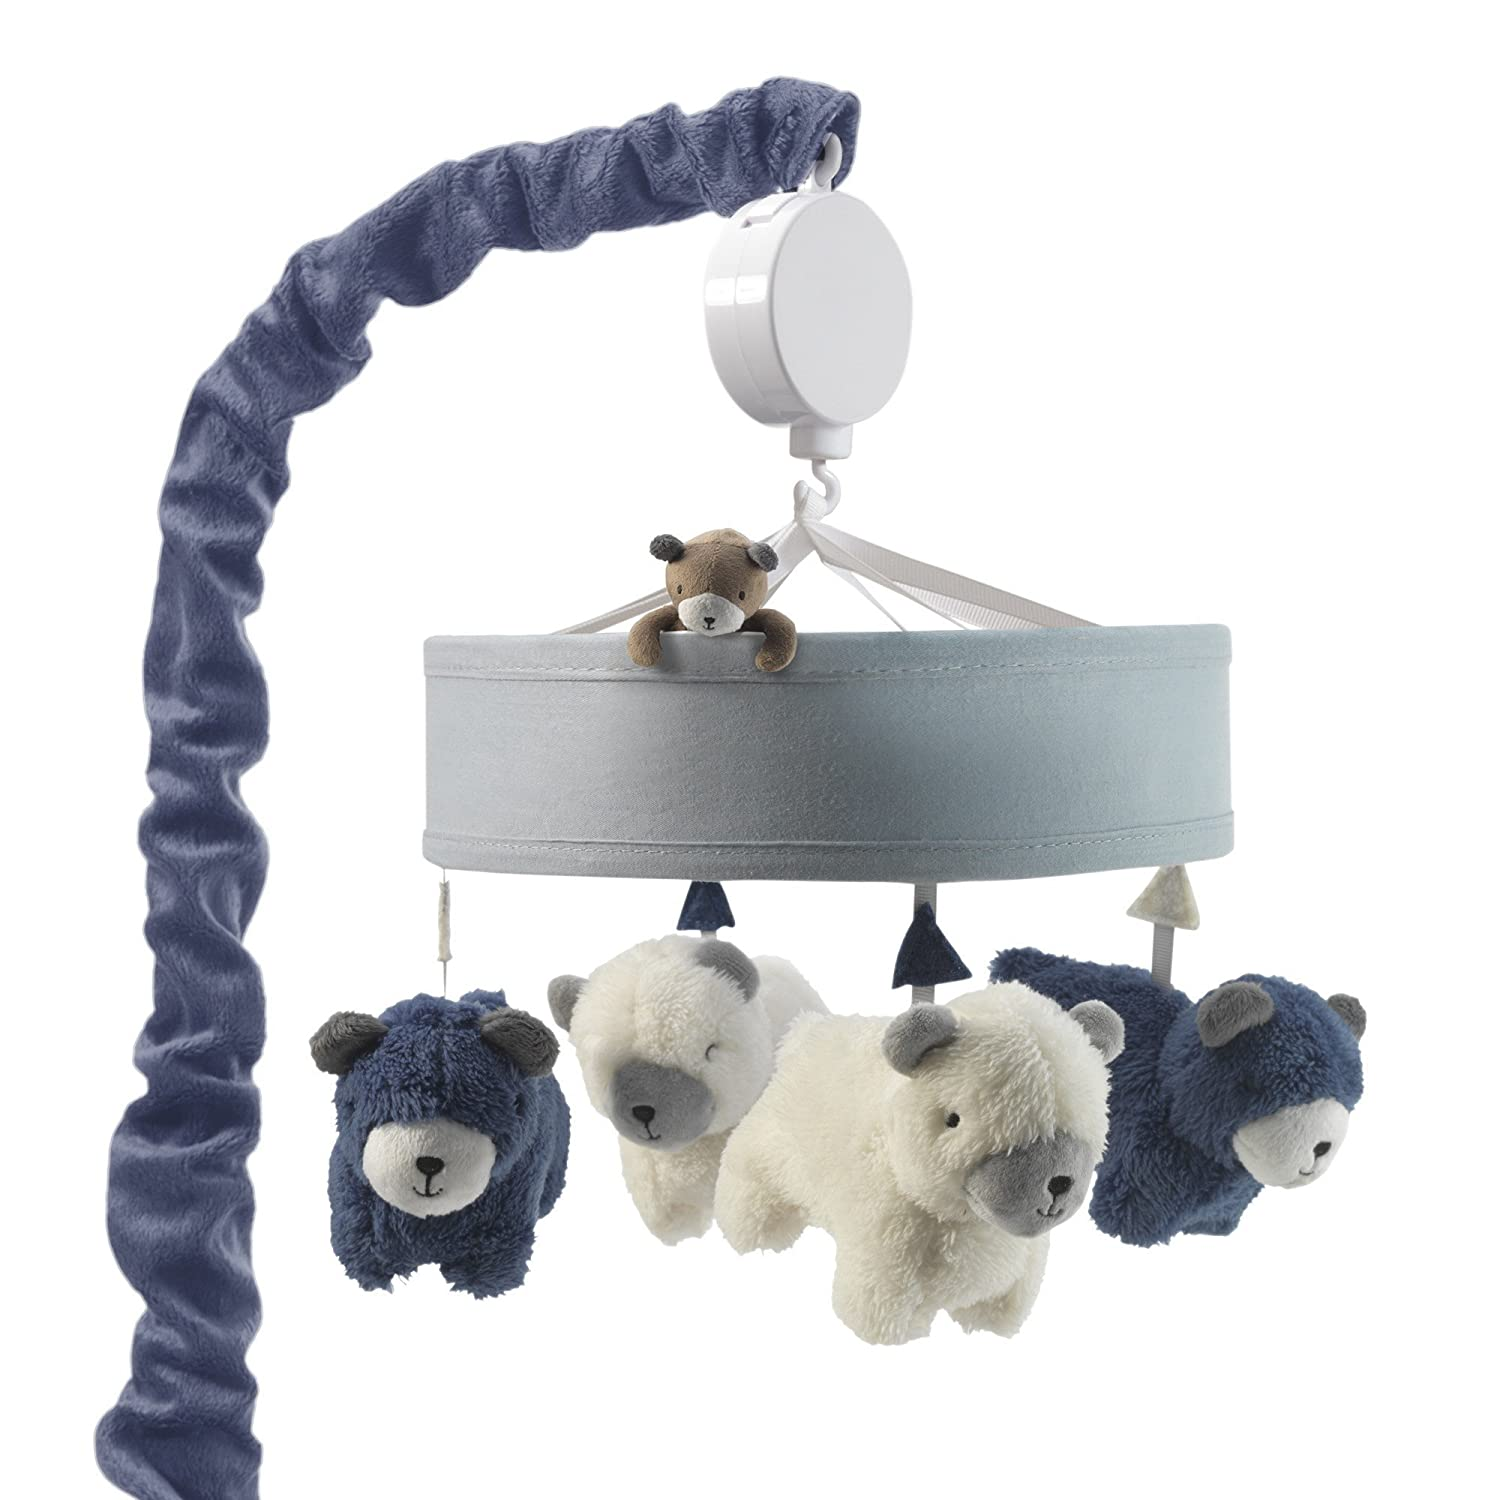 Lambs & Ivy Signature Montana Musical Mobile - Blue/White Bears